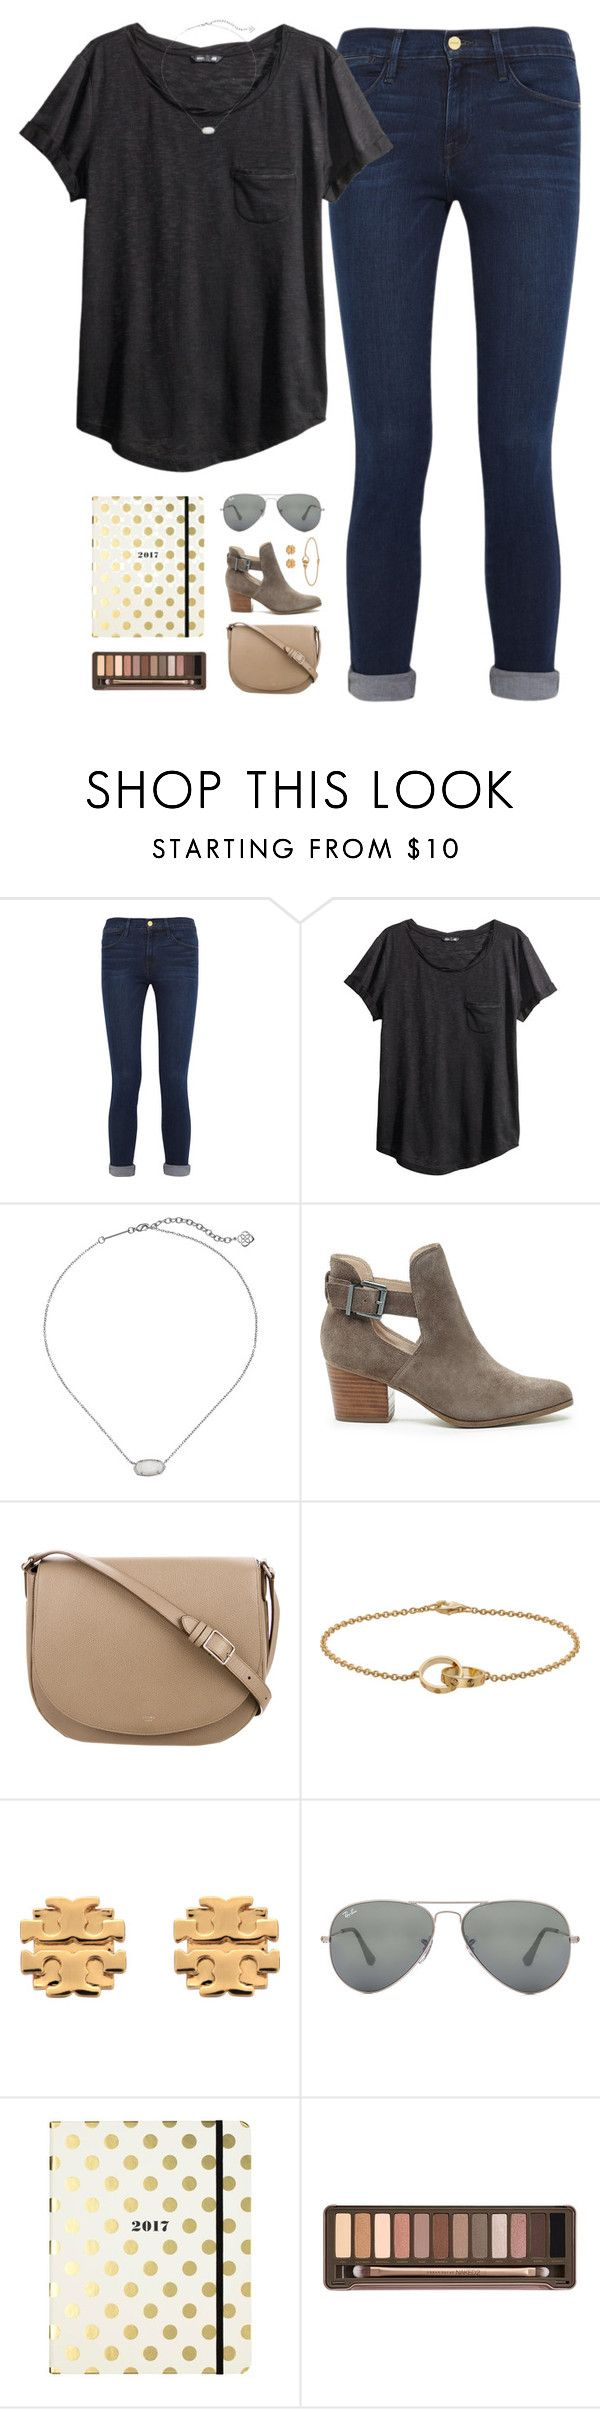 """mini"" by cjstefan ❤ liked on Polyvore featuring Frame Denim, H&M, Kendra Scott, Sole Society, CÉLINE, Cartier, Tory Burch, Ray-Ban, Kate Spade and Urban Decay"